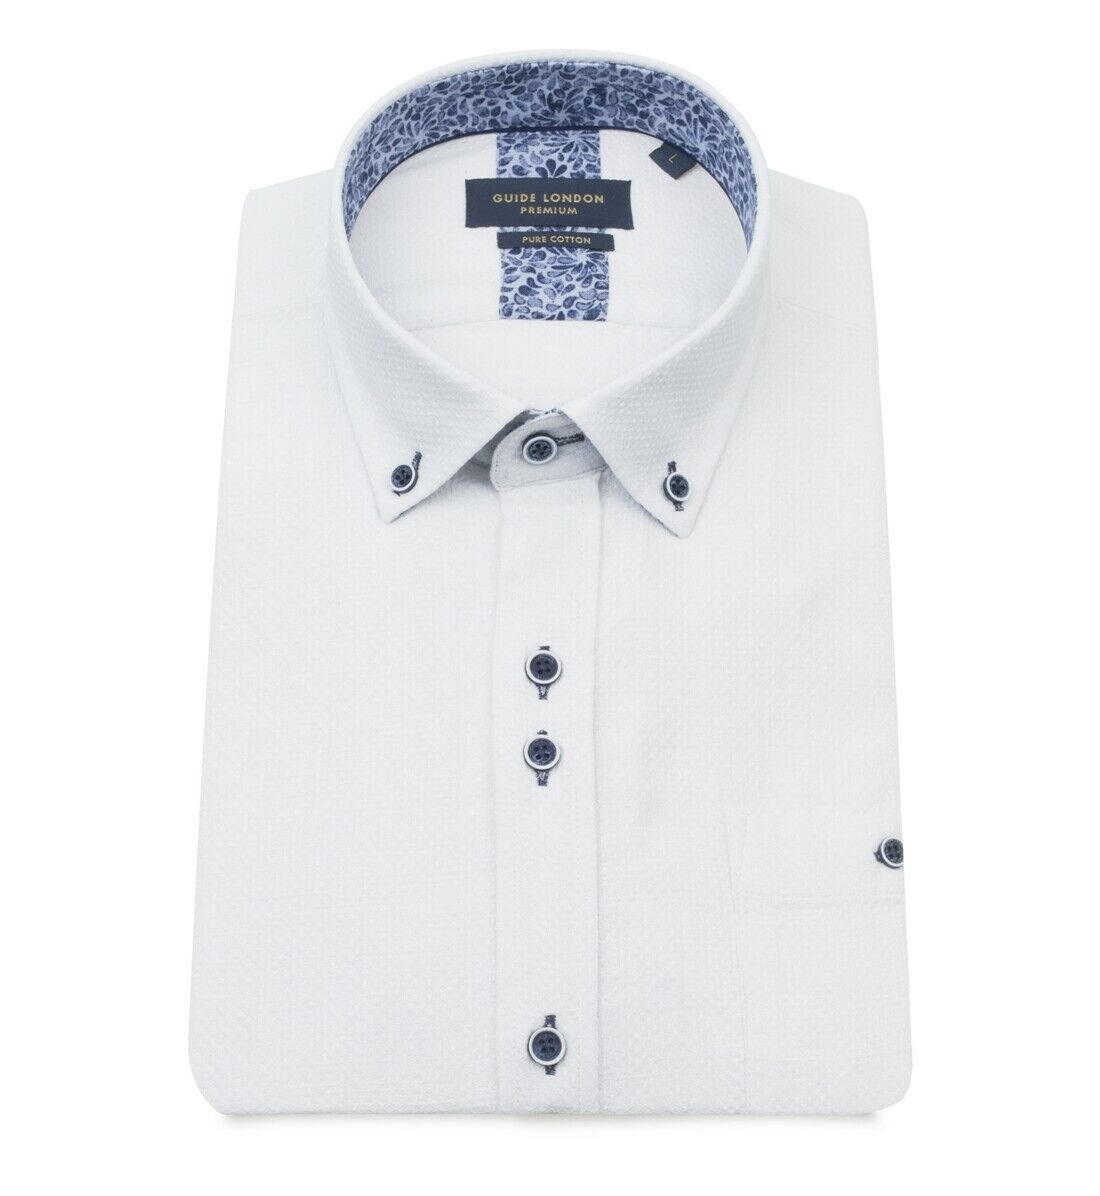 Guide London White Waffle Pure Cotton Short Sleeve Shirt - HS2356